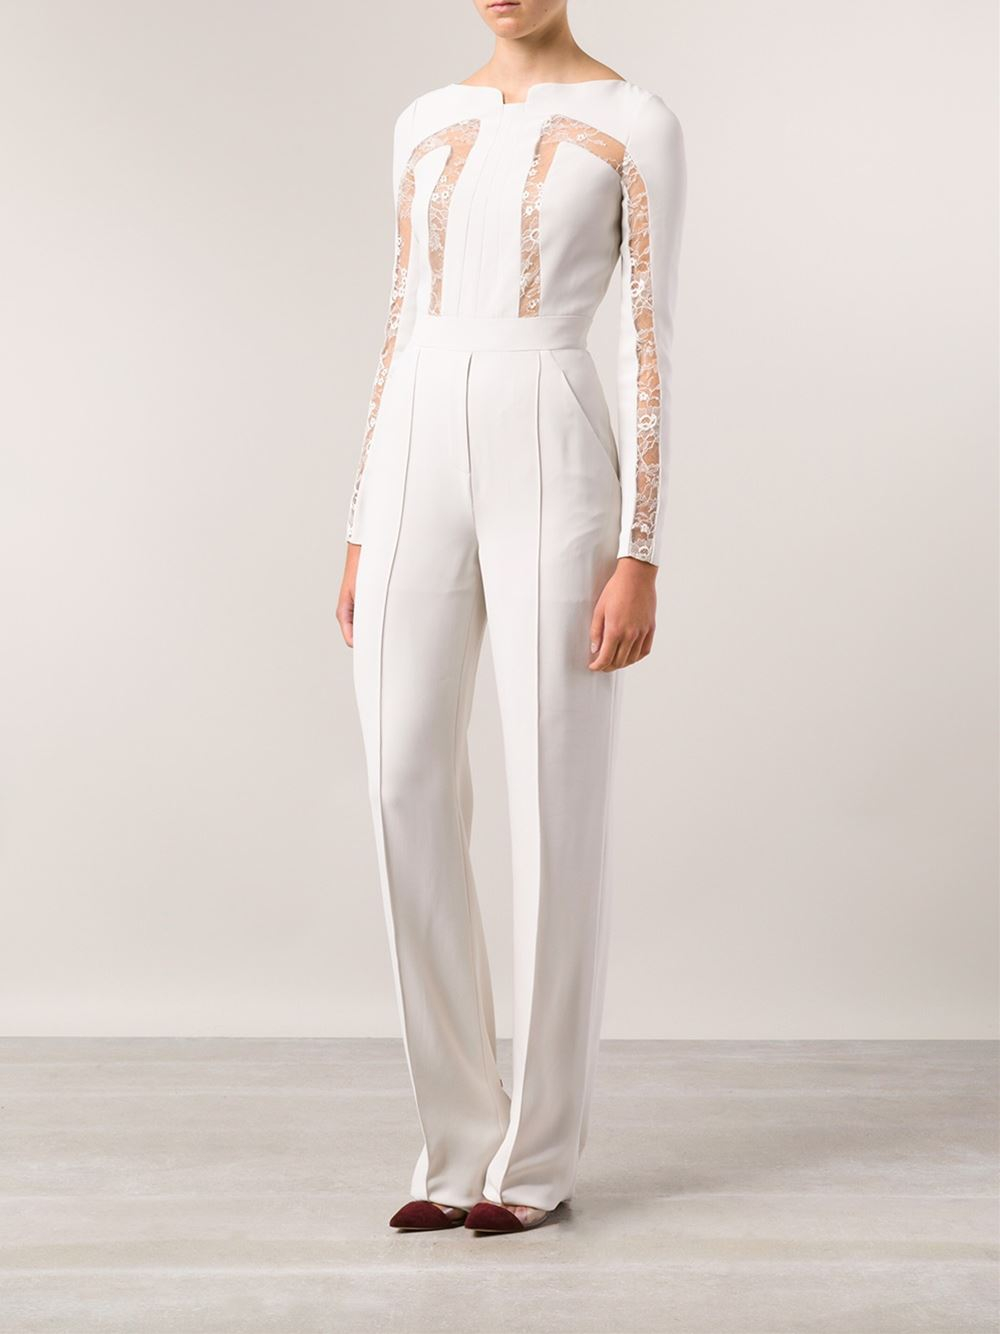 d24bf515bd7 Lyst - Elie Saab Lace Insert Jumpsuit in White